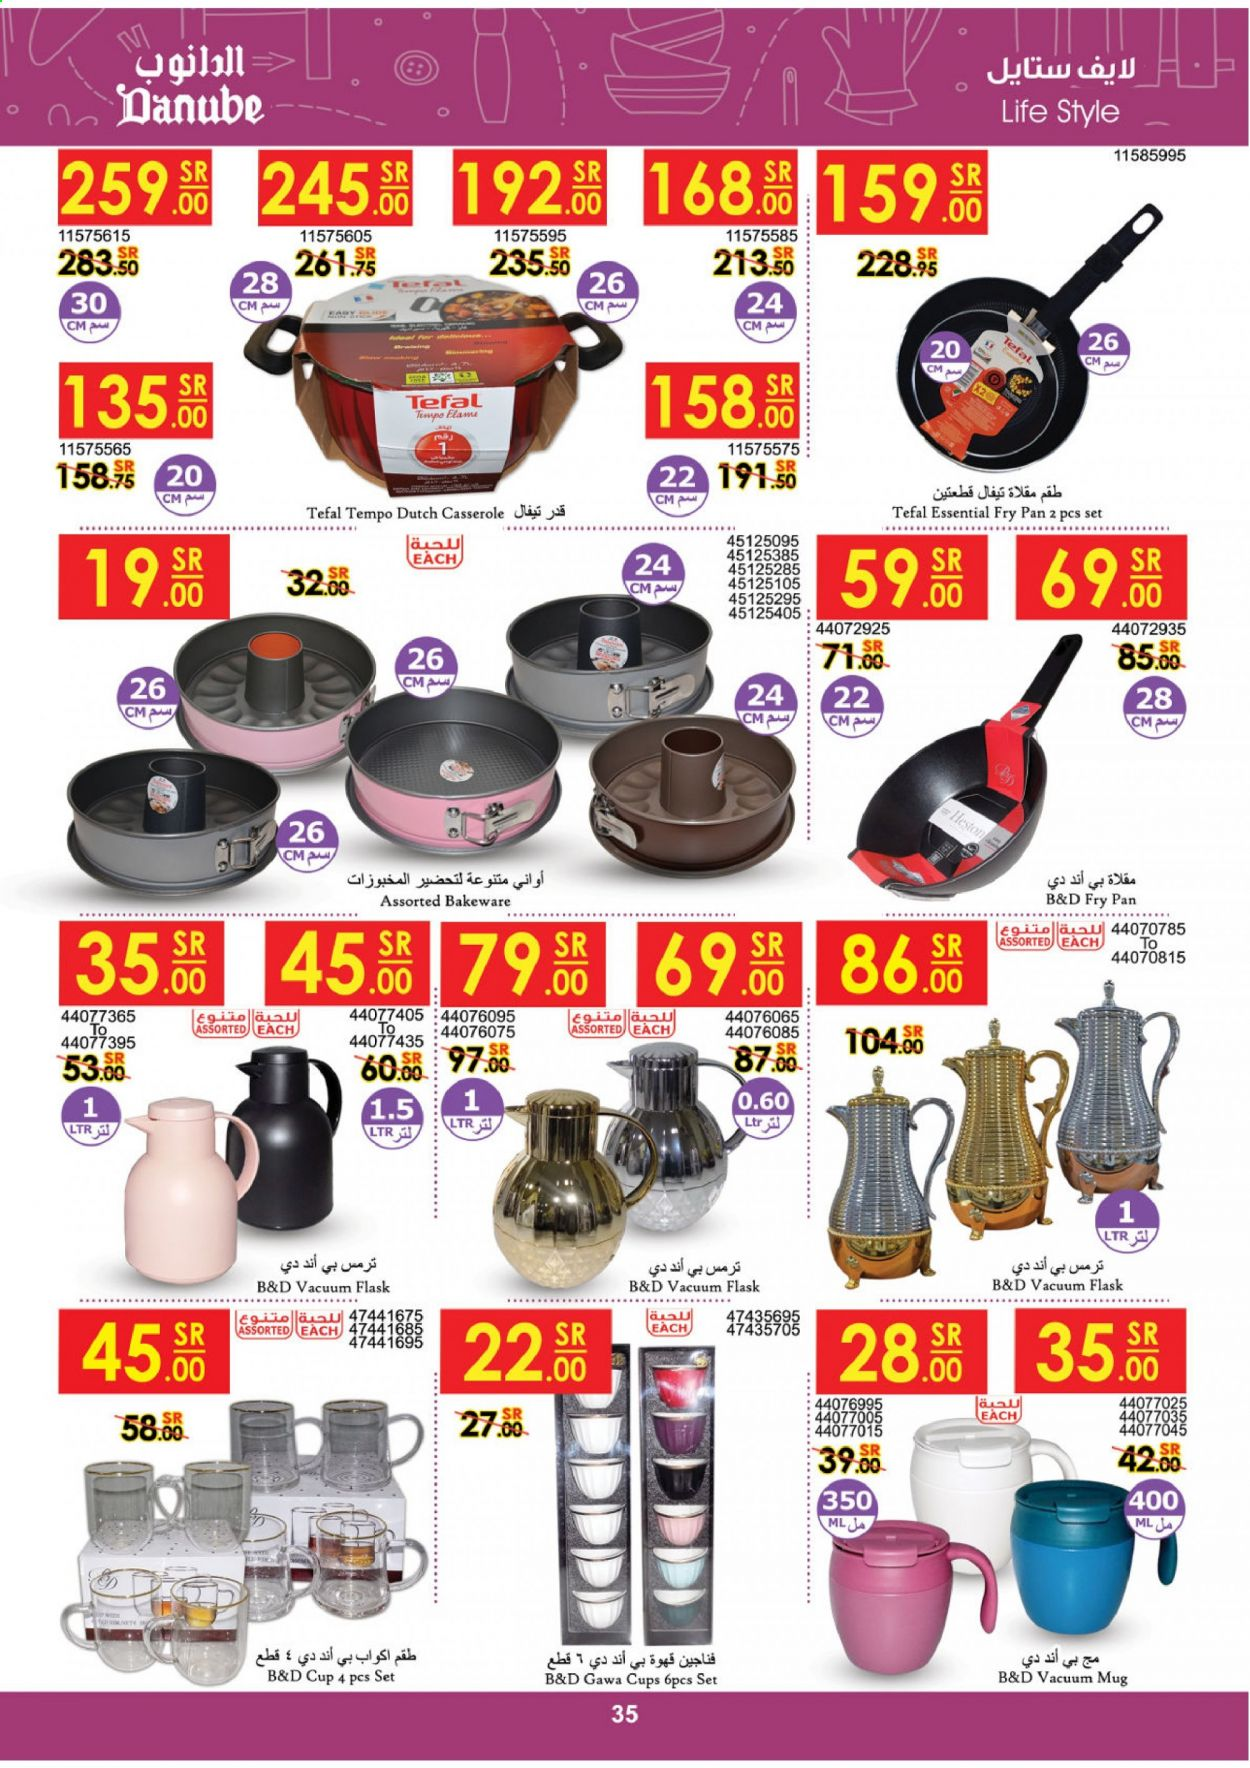 <retailer> - <MM.DD.YYYY - MM.DD.YYYY> - Sales products - ,<products from offers>. Page 35.